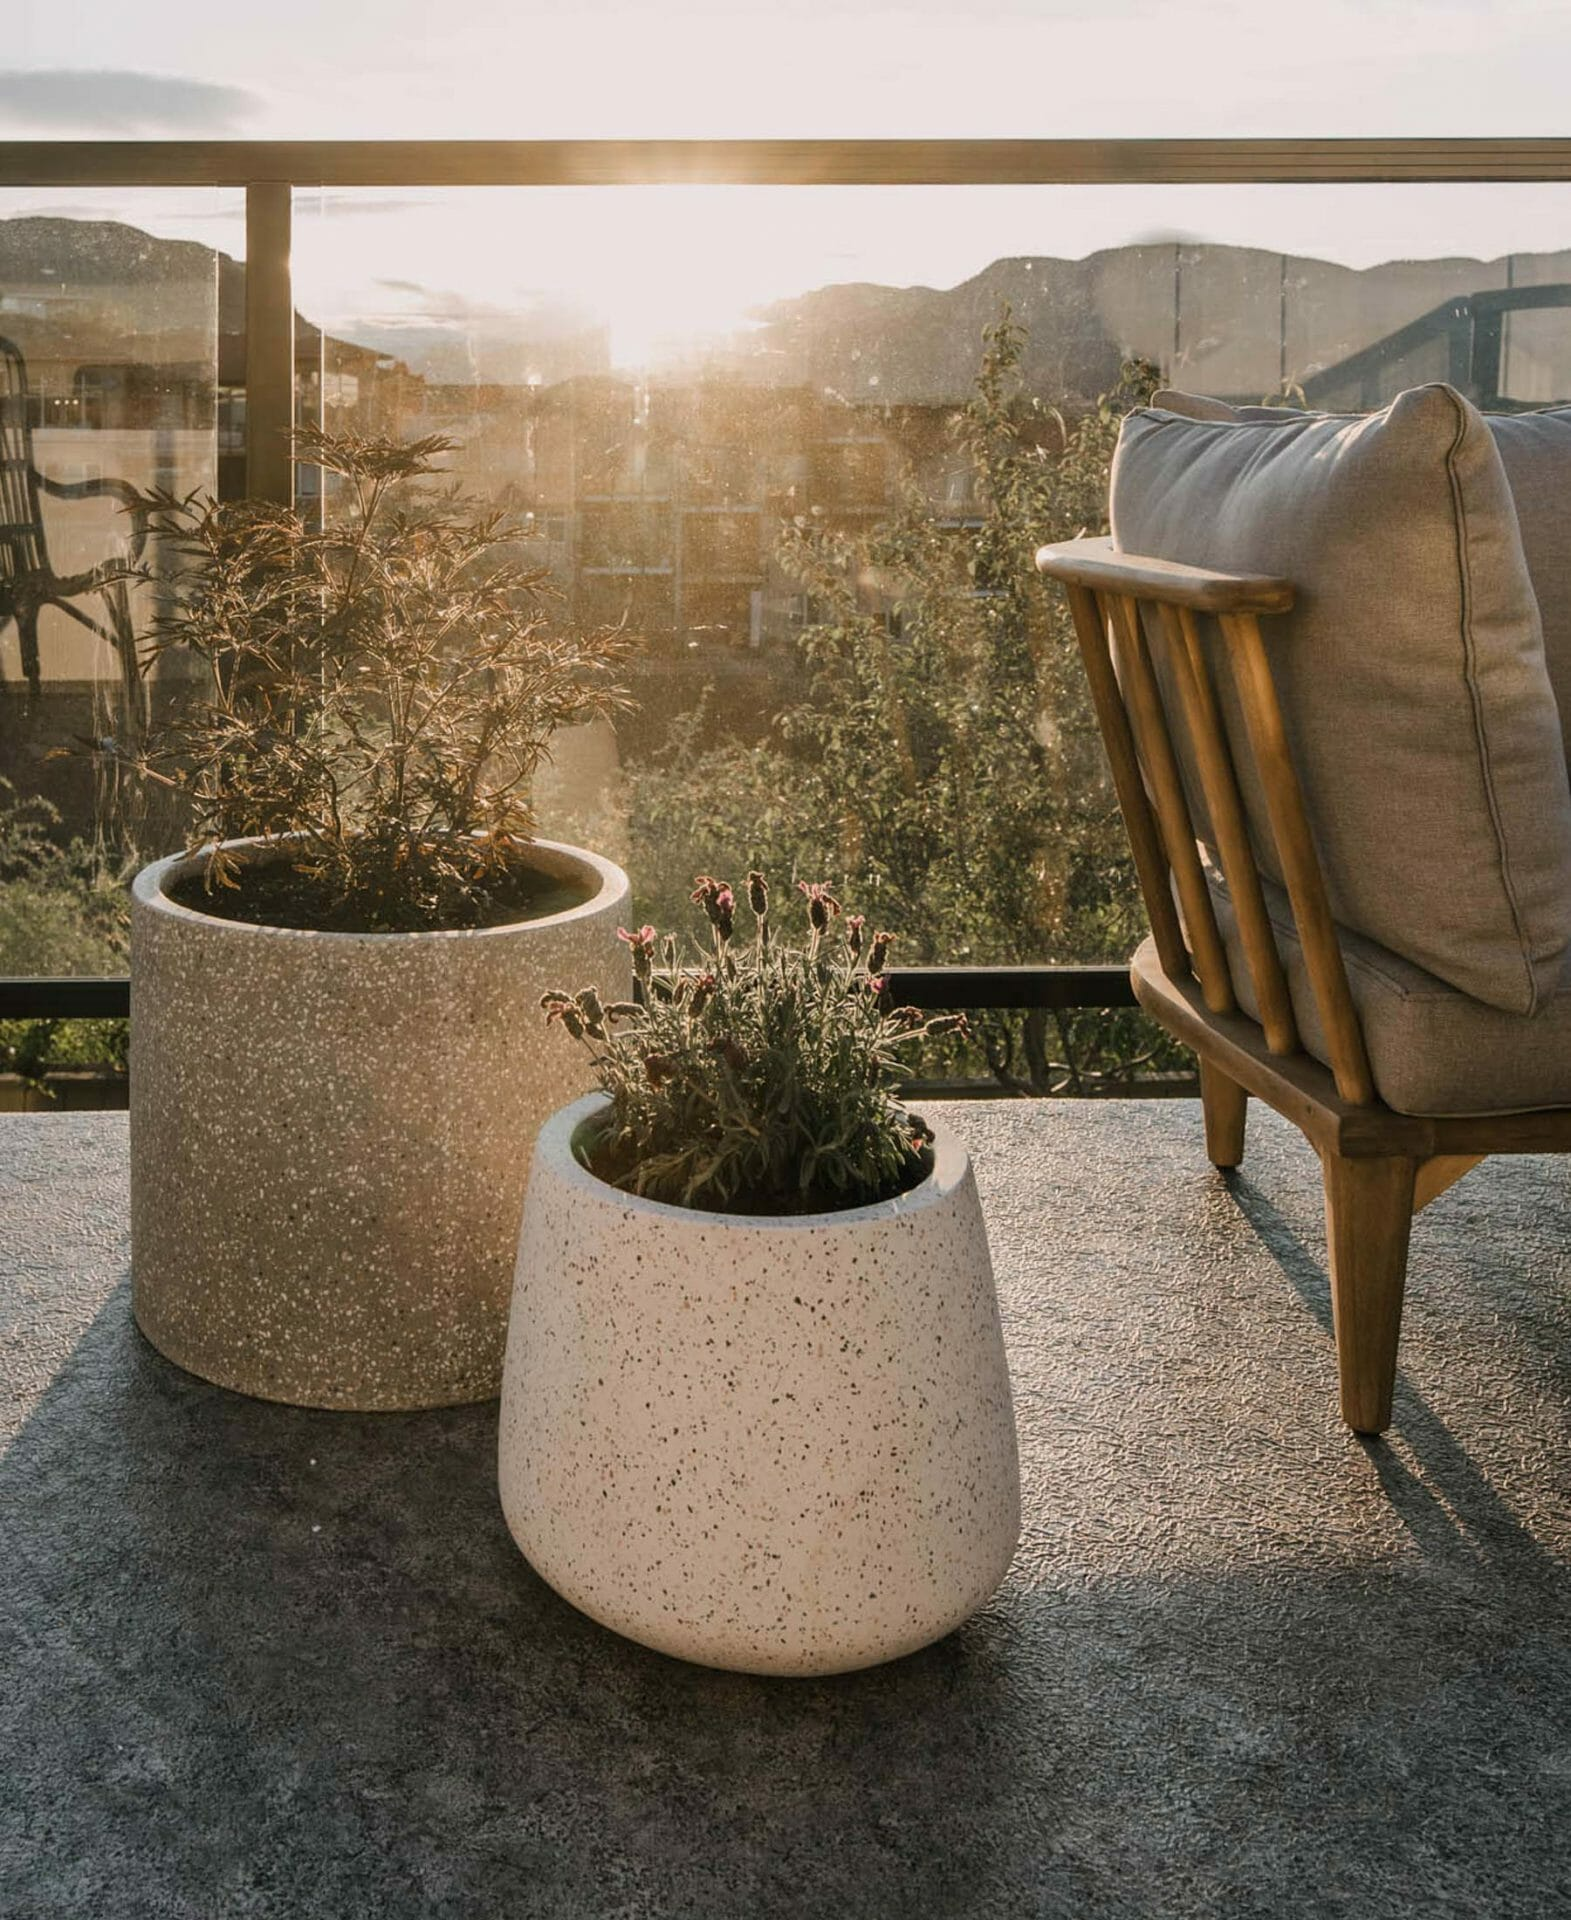 Blogger Lemon Thistle's apartment balcony is seen with two Article terrazzo planters.